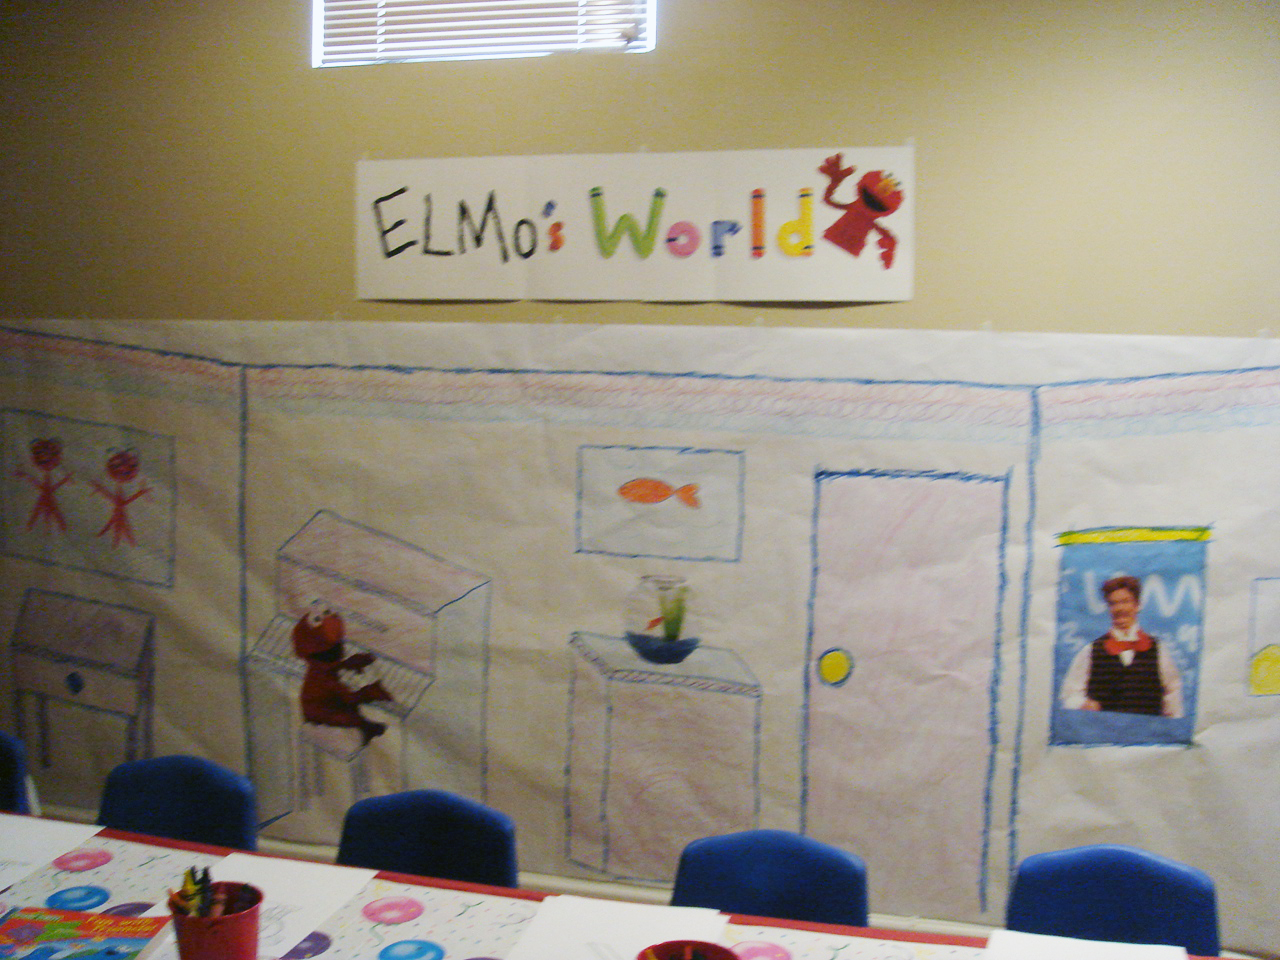 elmos world2